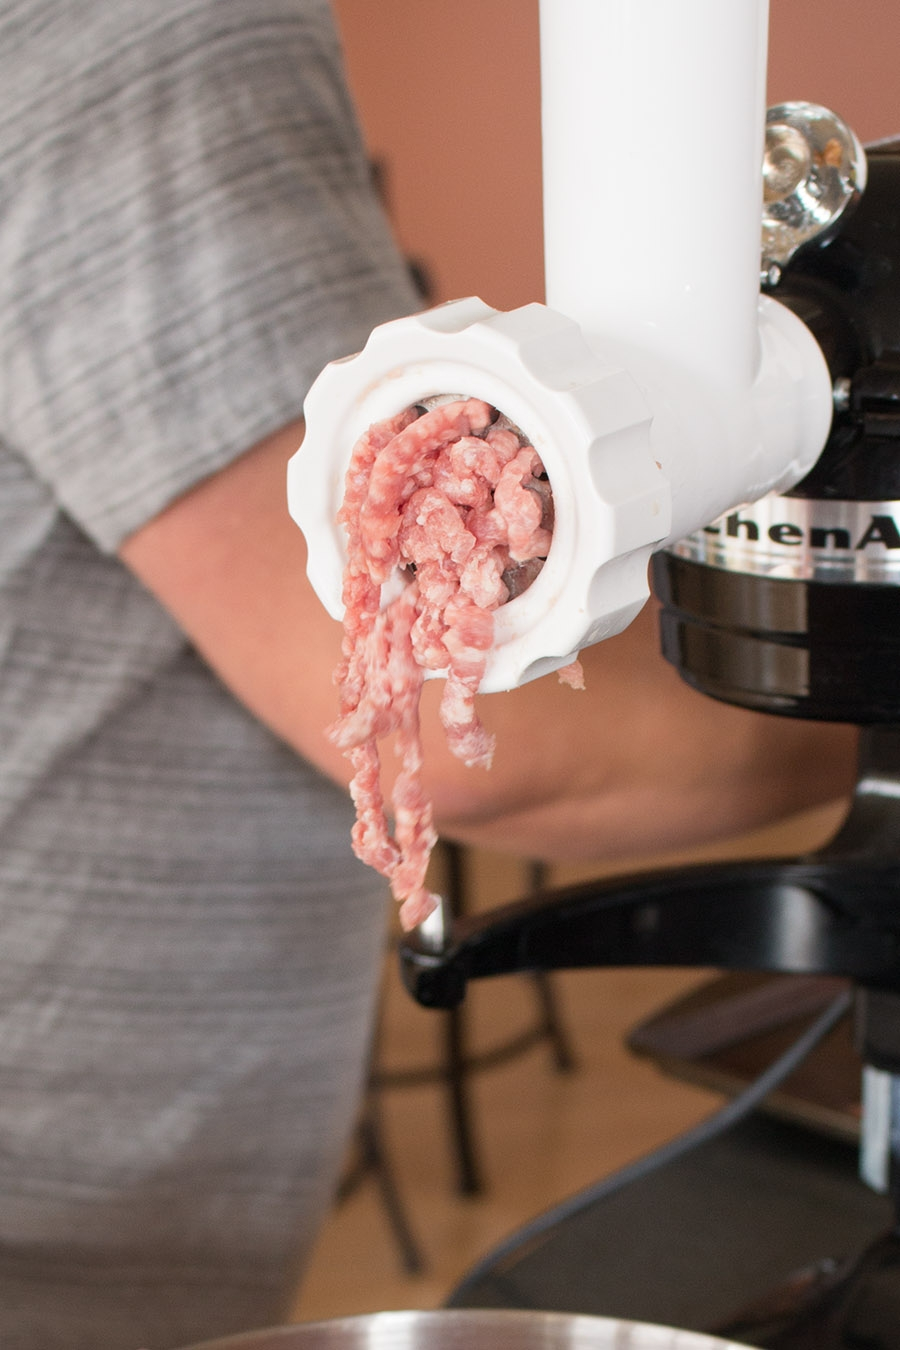 Grinding Meat with a Meat Grinder – The Why and the How